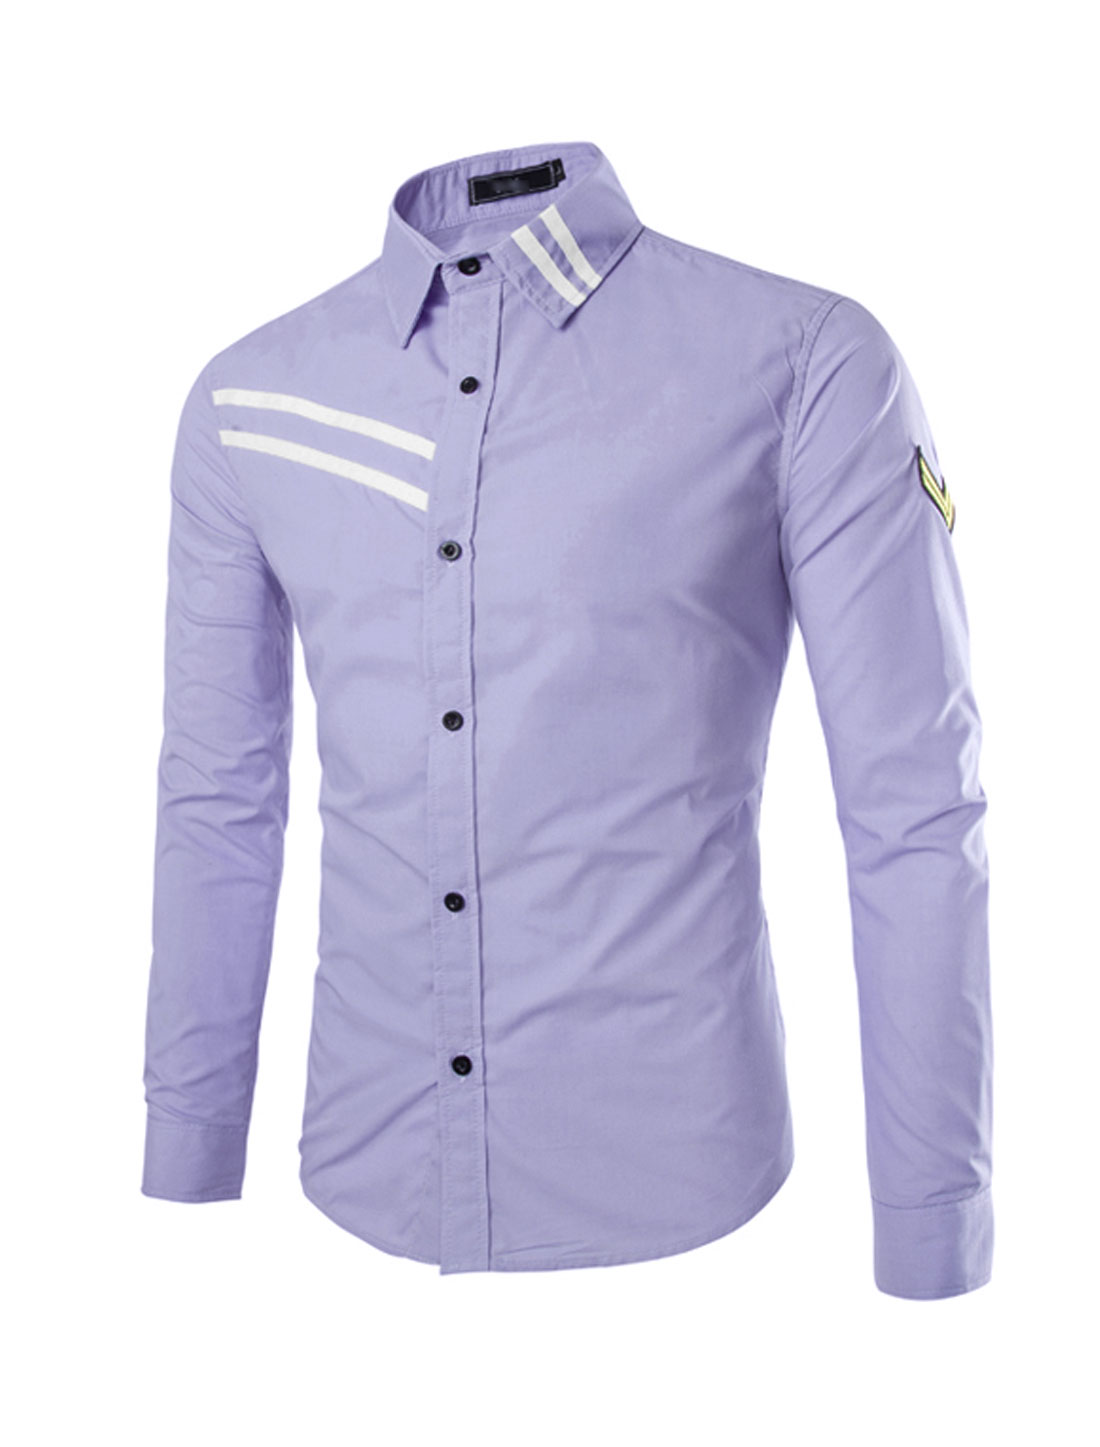 Men Button Down Long Sleeve Applique Detail Shirt Lavender S